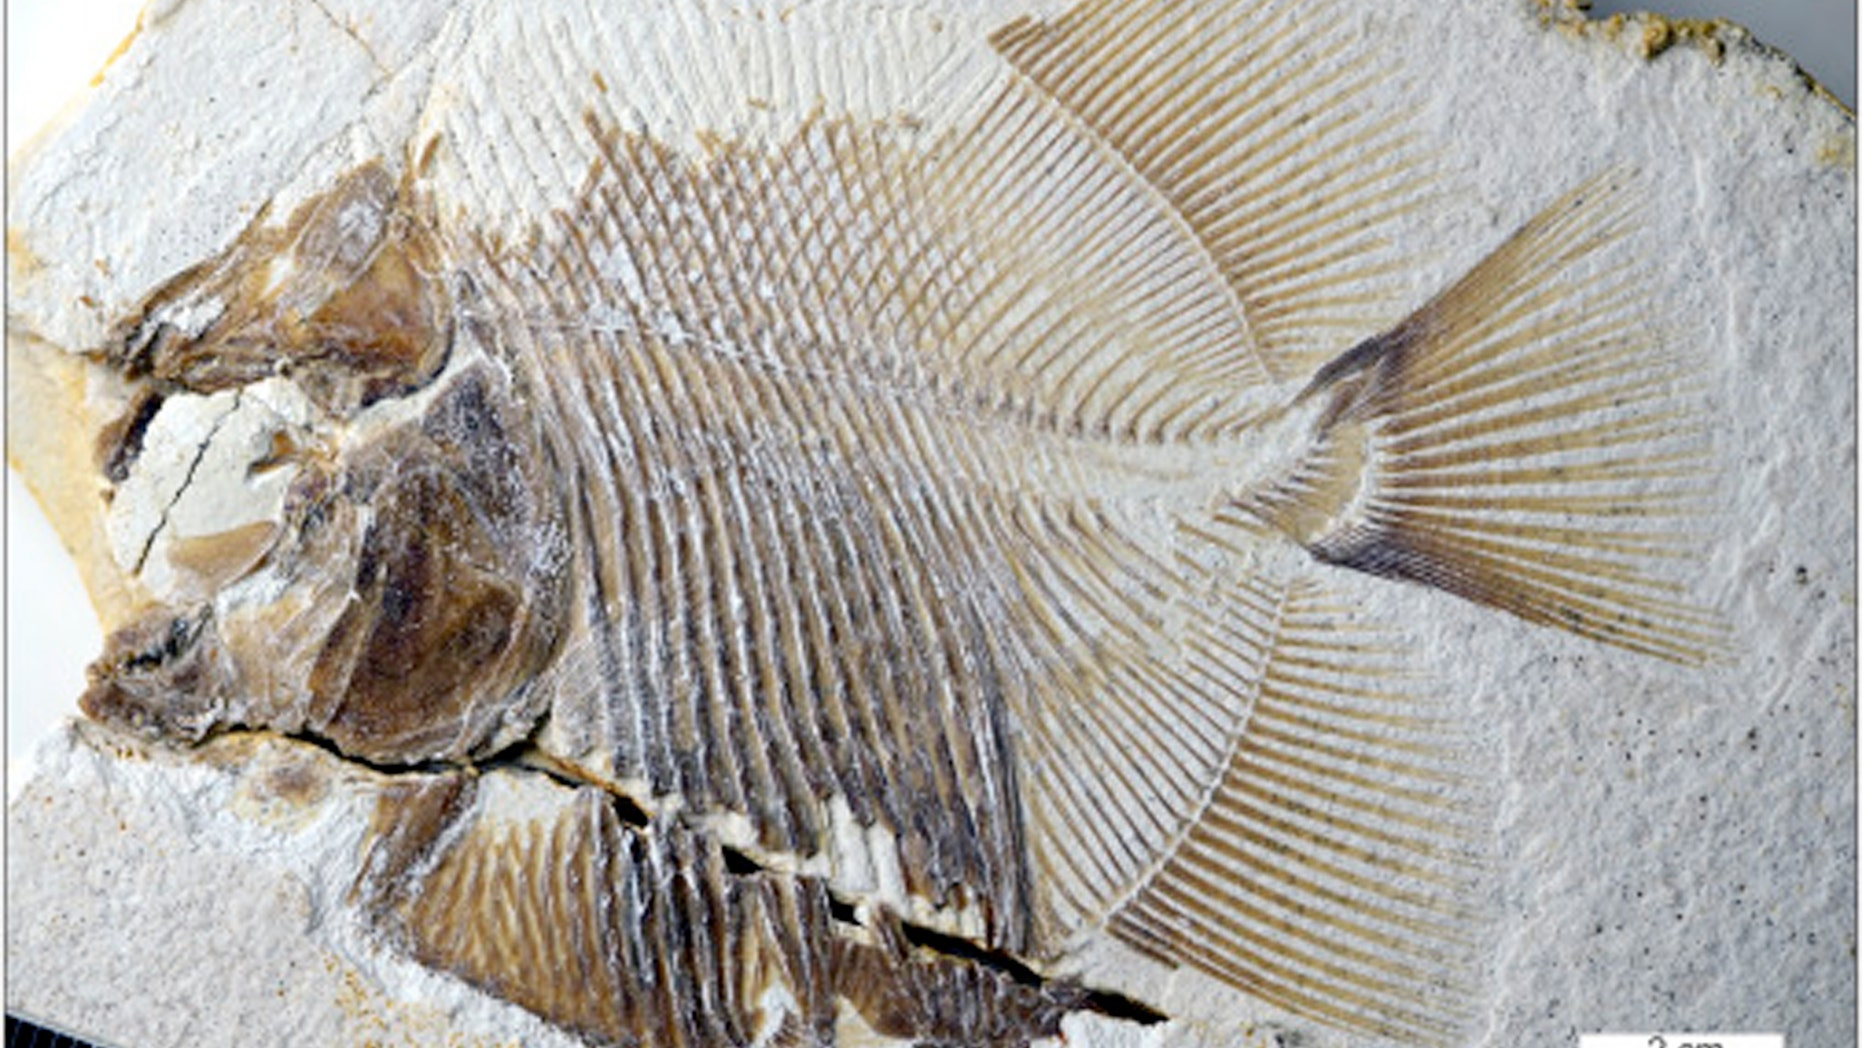 Flesh-eating piranha-like fish's 150-million-year-old remains discovered in Germany